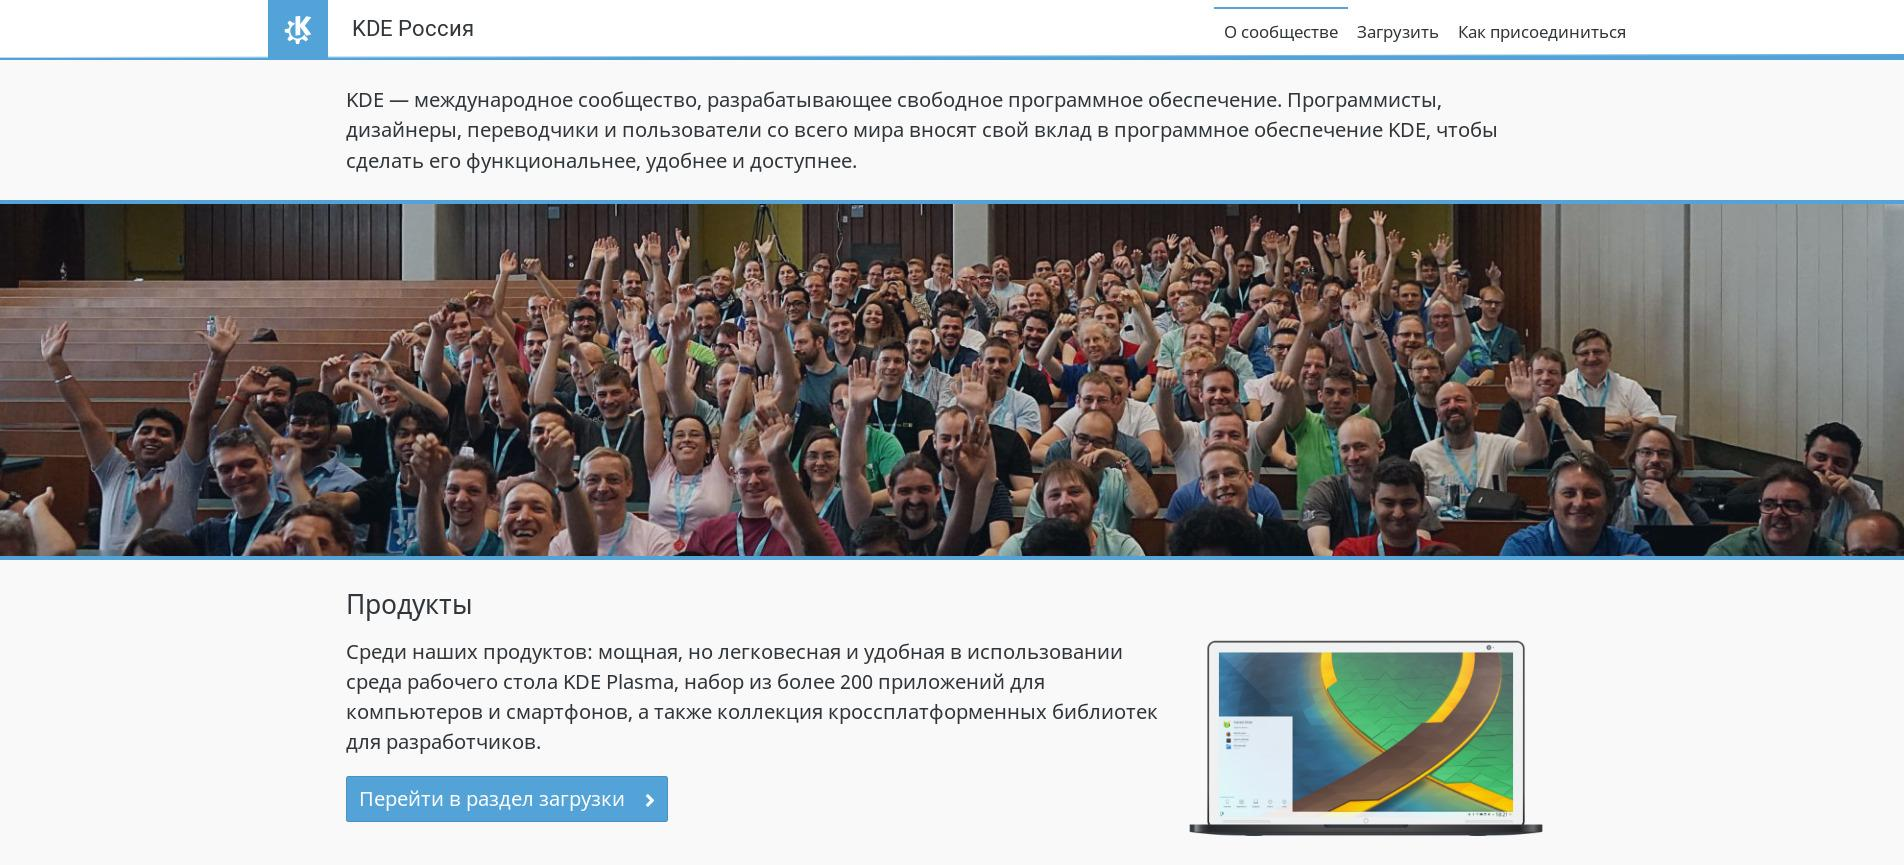 New KDE.ru website